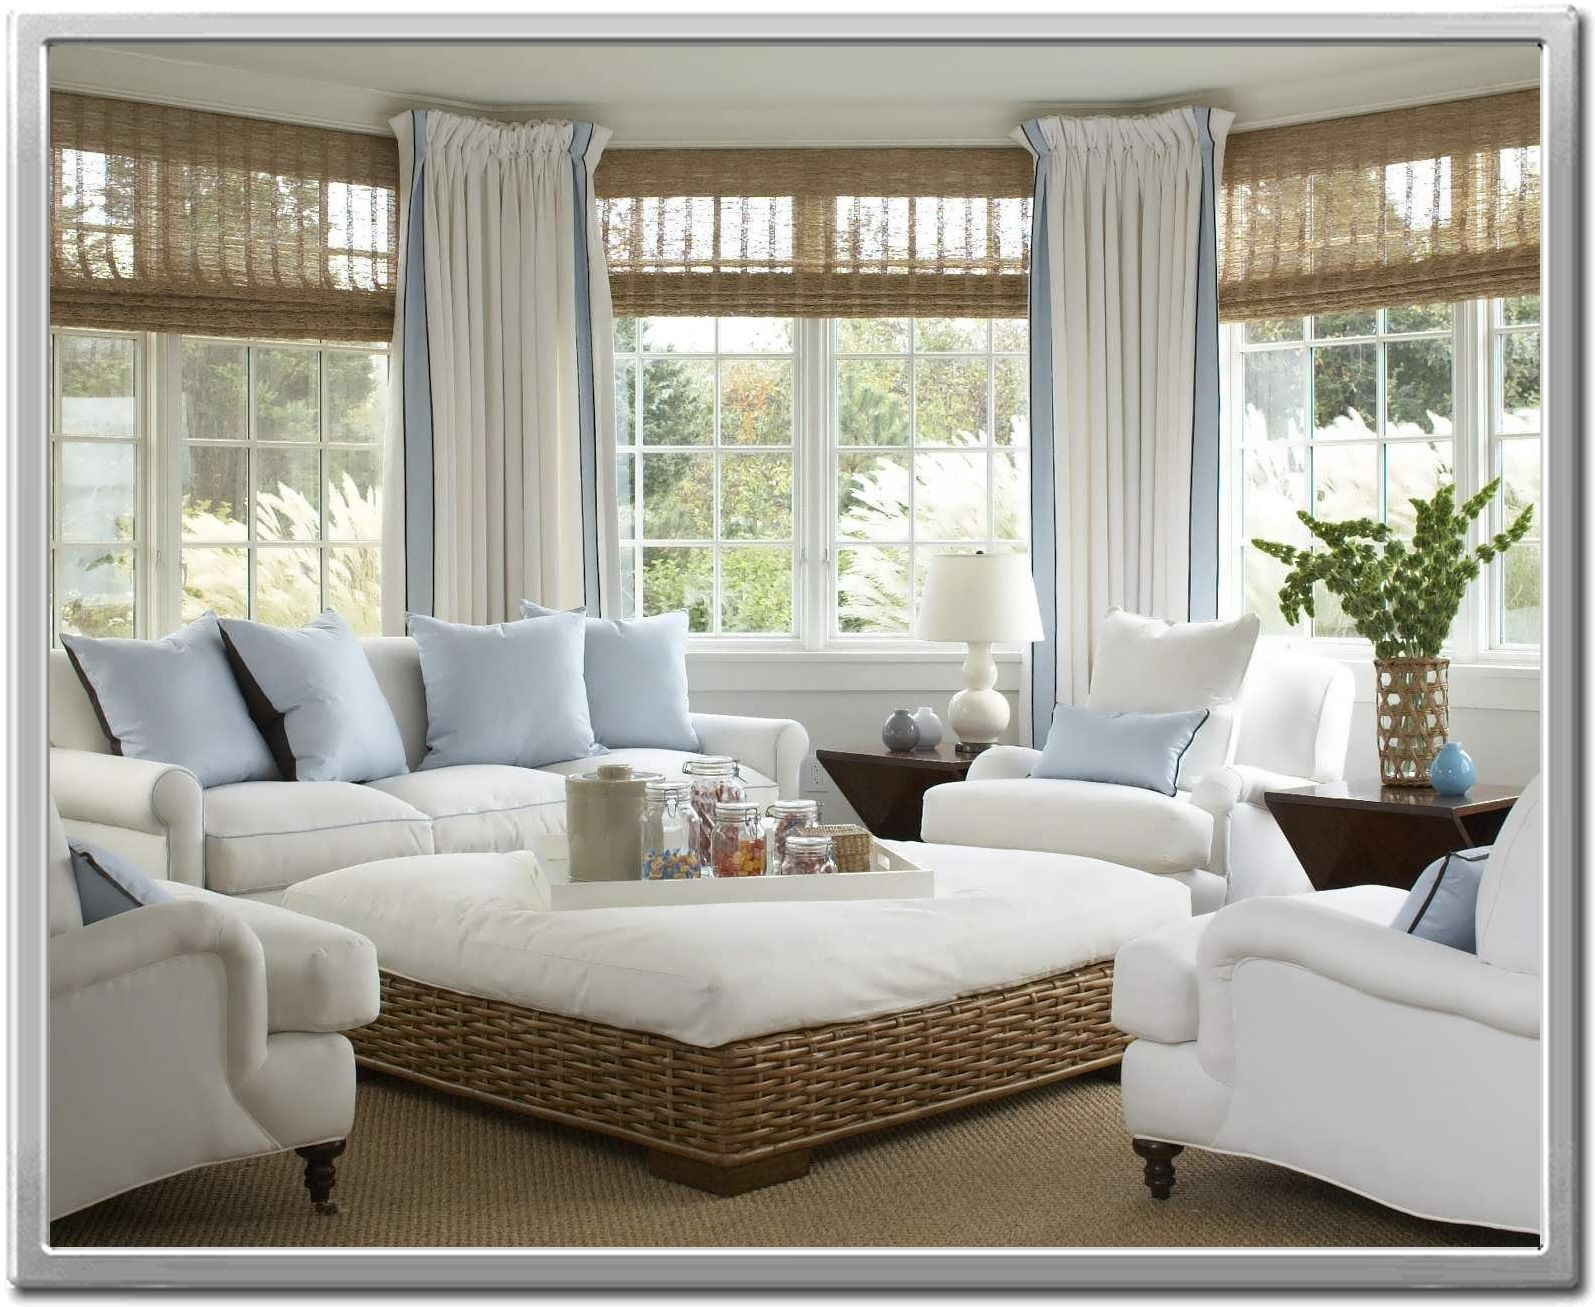 Diy Sunroom Window Treatments  For My Home  Pinterest  Sunroom Awesome Living Room Window Designs 2018